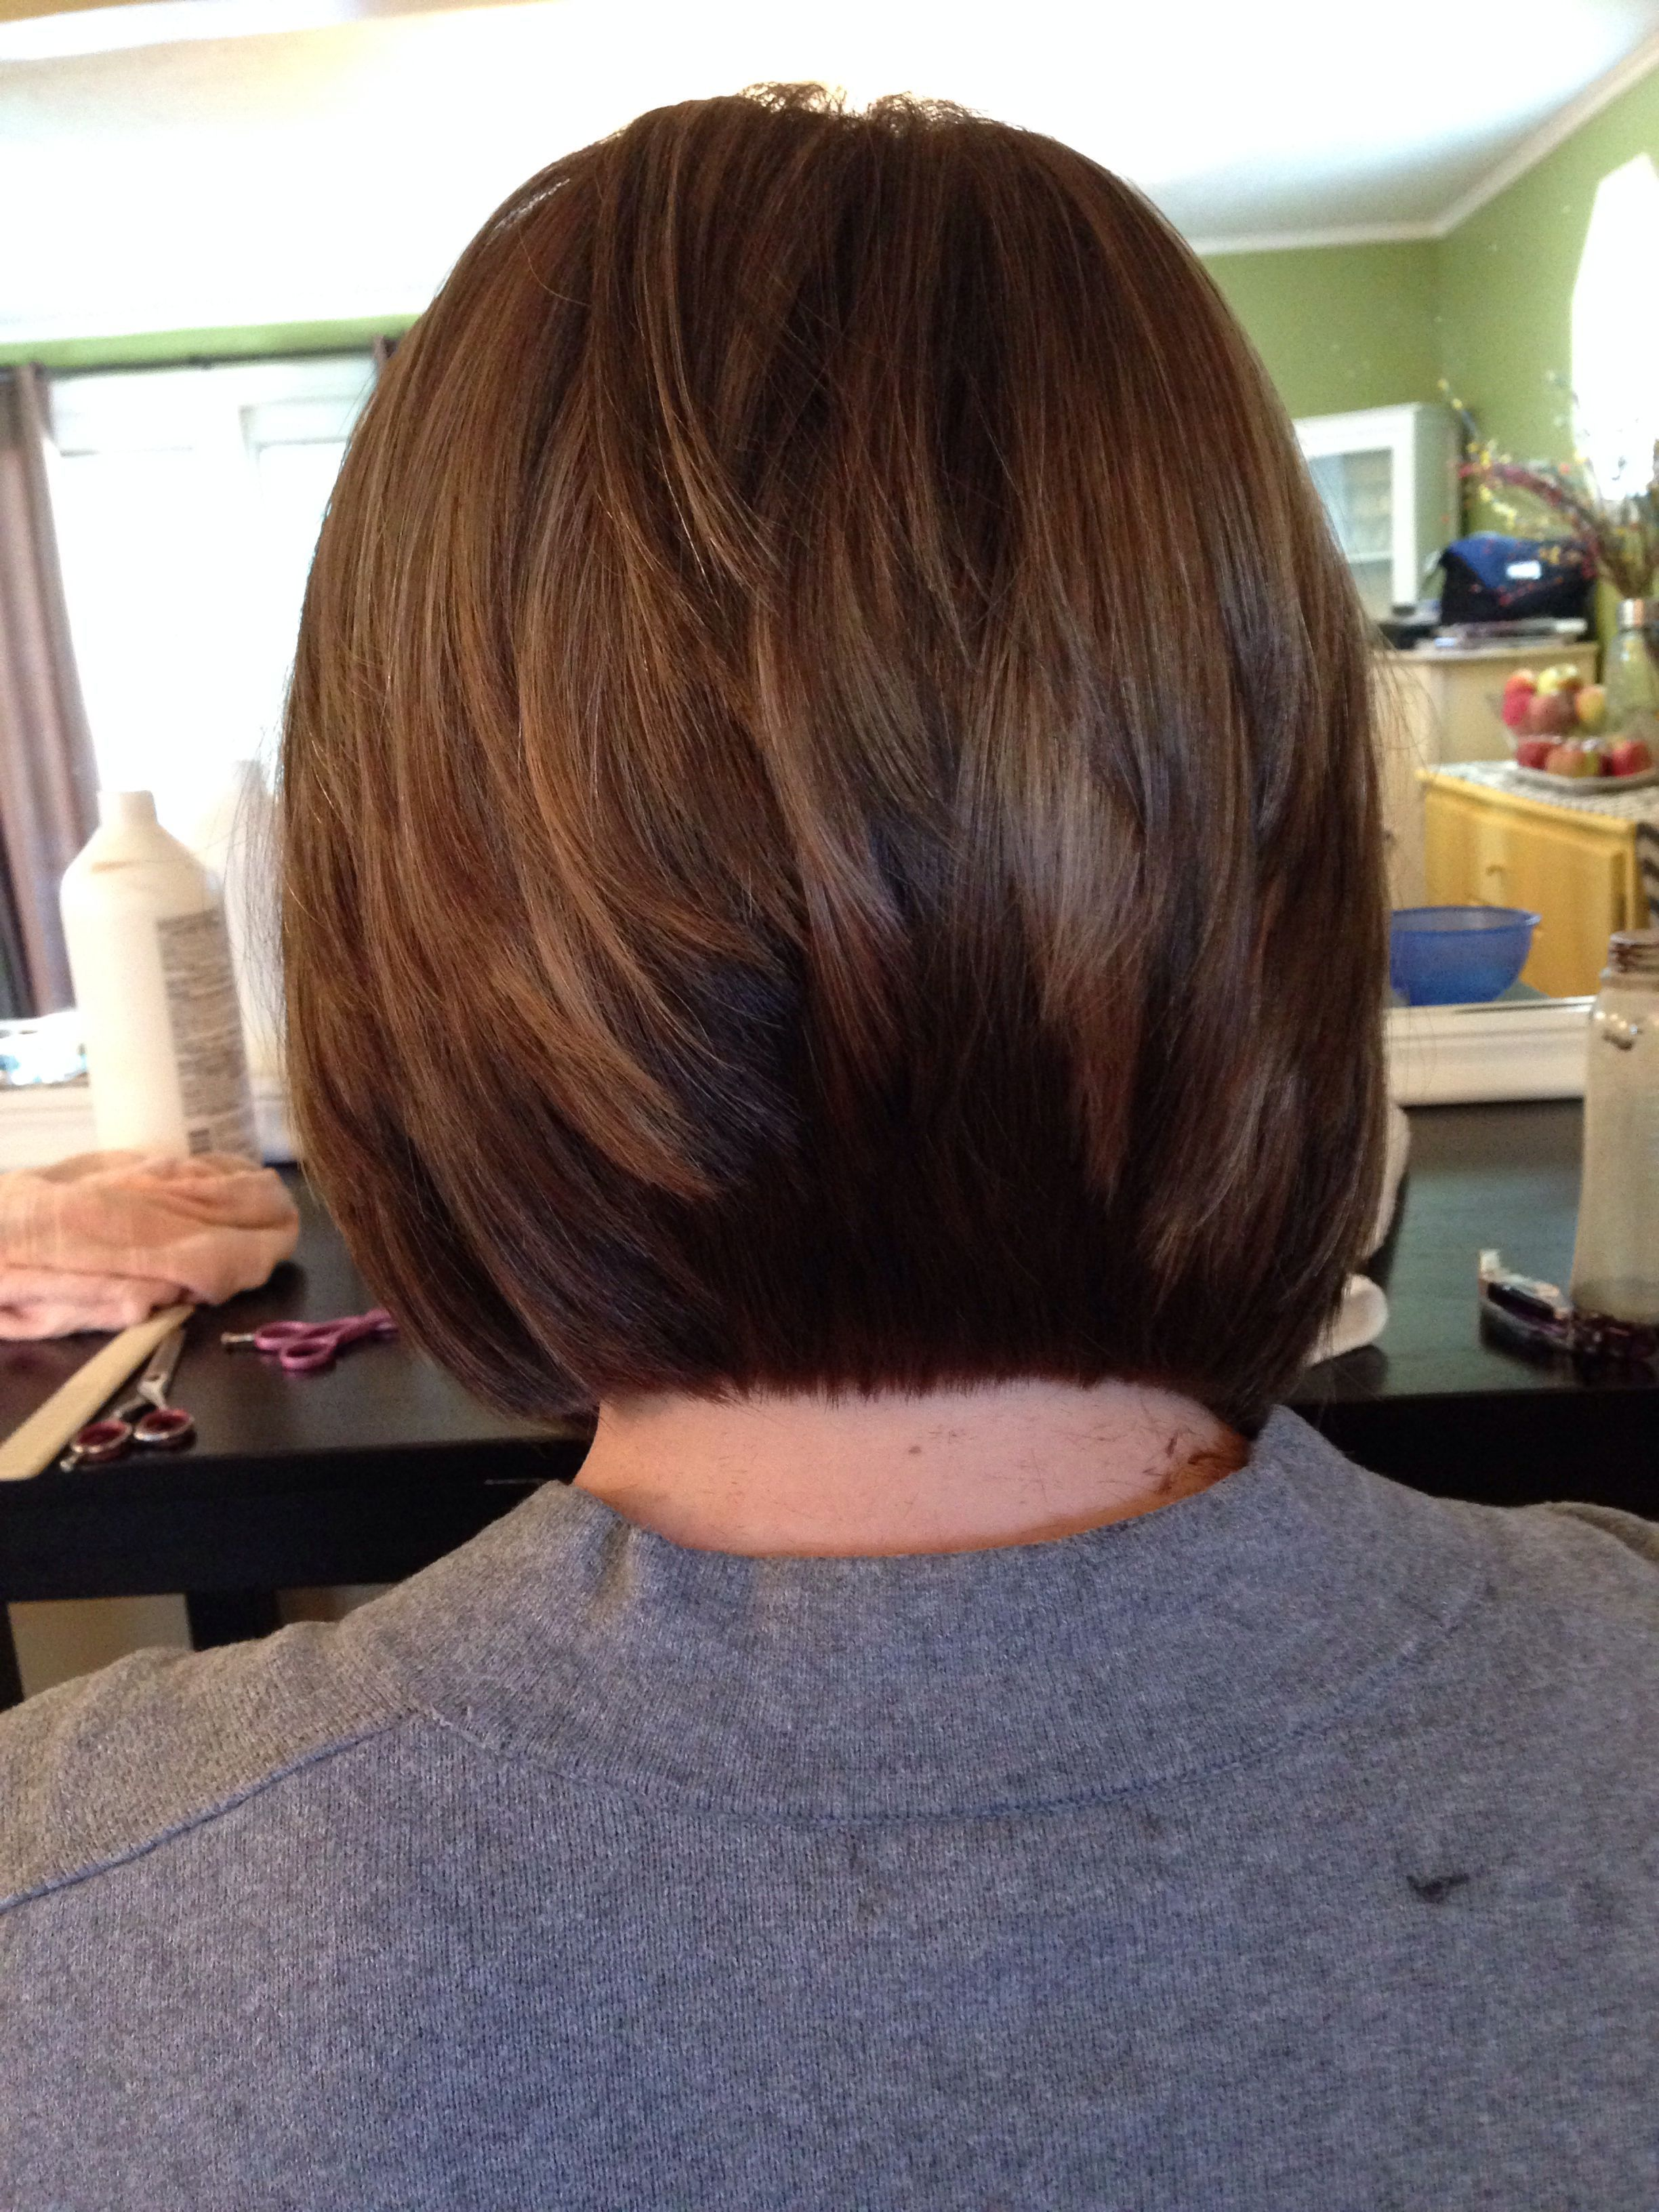 201 Bob Haircuts For Women Over 40 Short Hair Styles